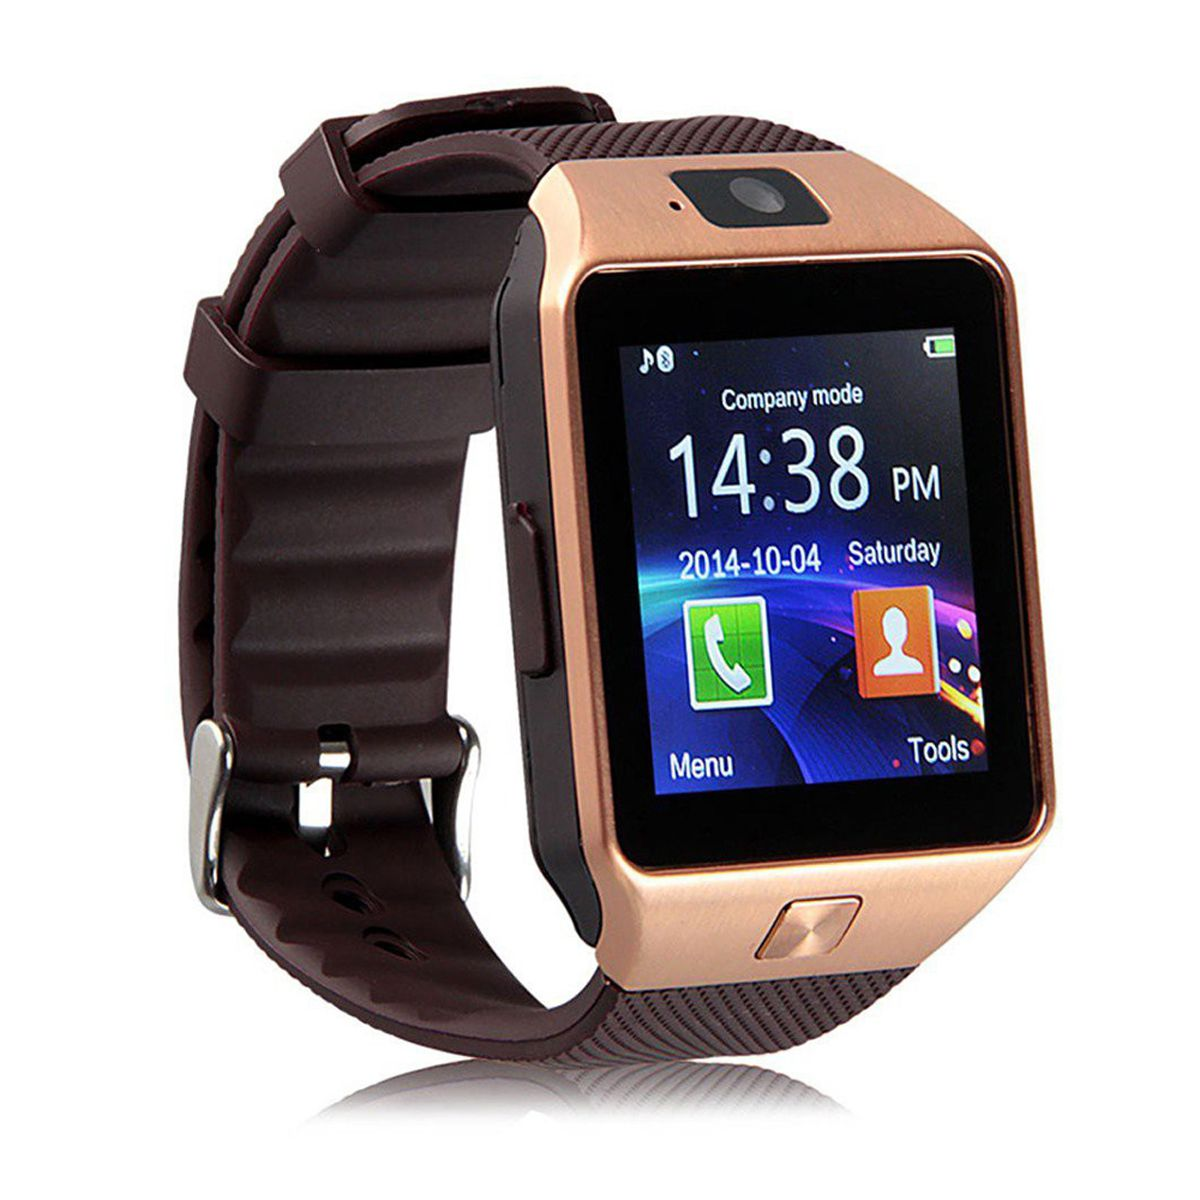 Over Tech Smartwatch Suited iBall Andi4.5-K6 Dz09 Golden Smart Watches